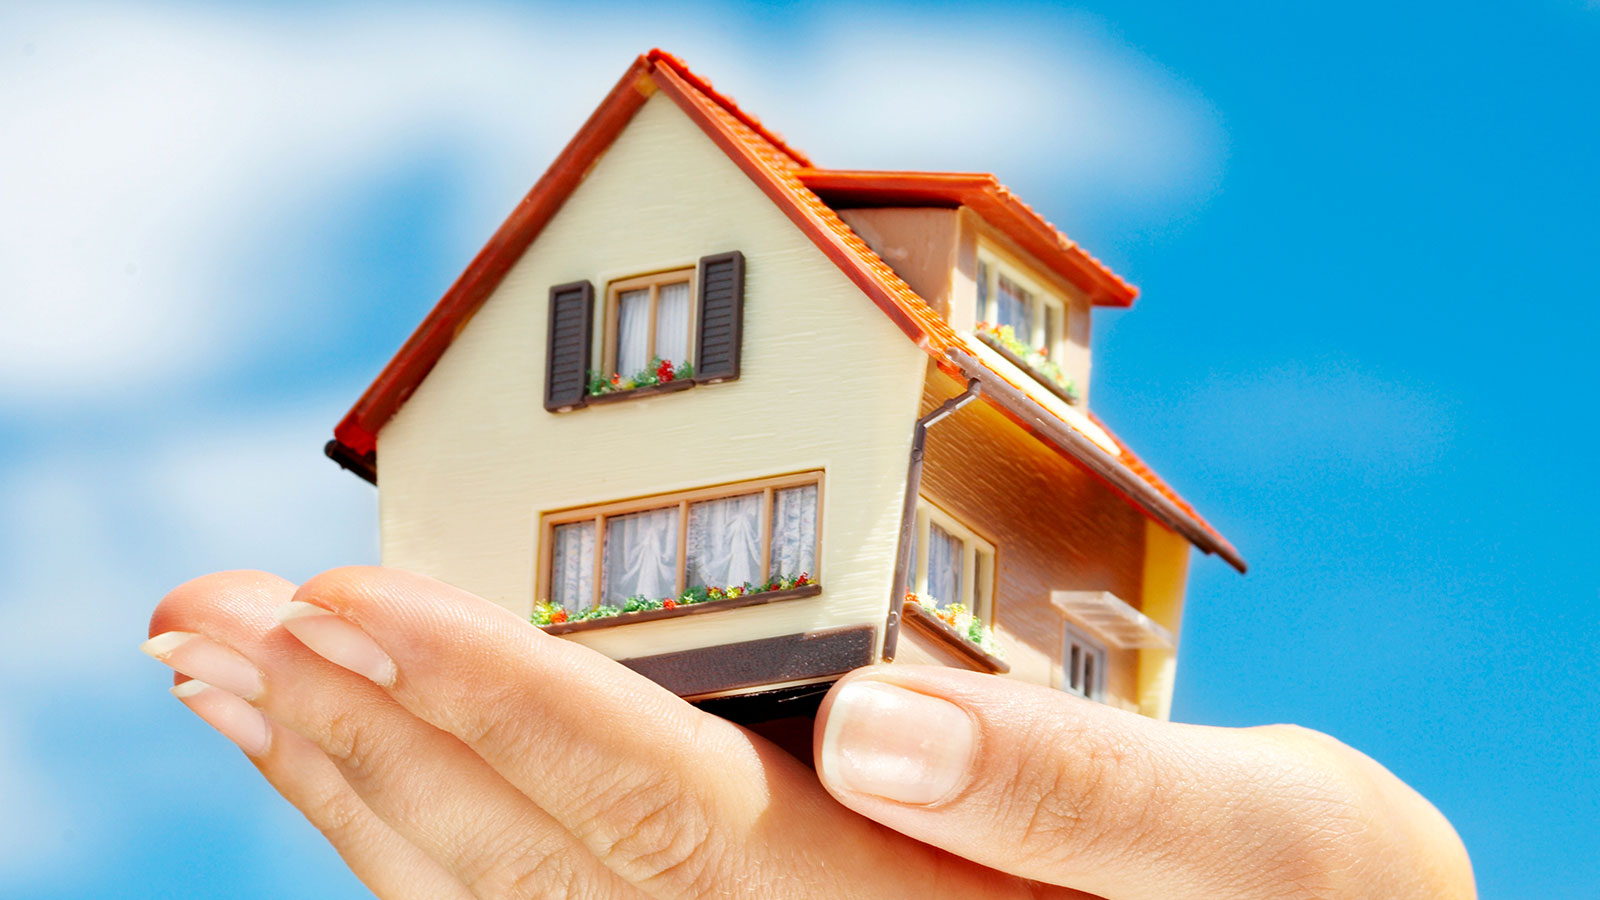 fha loans the mortgage first time home buyers love the american